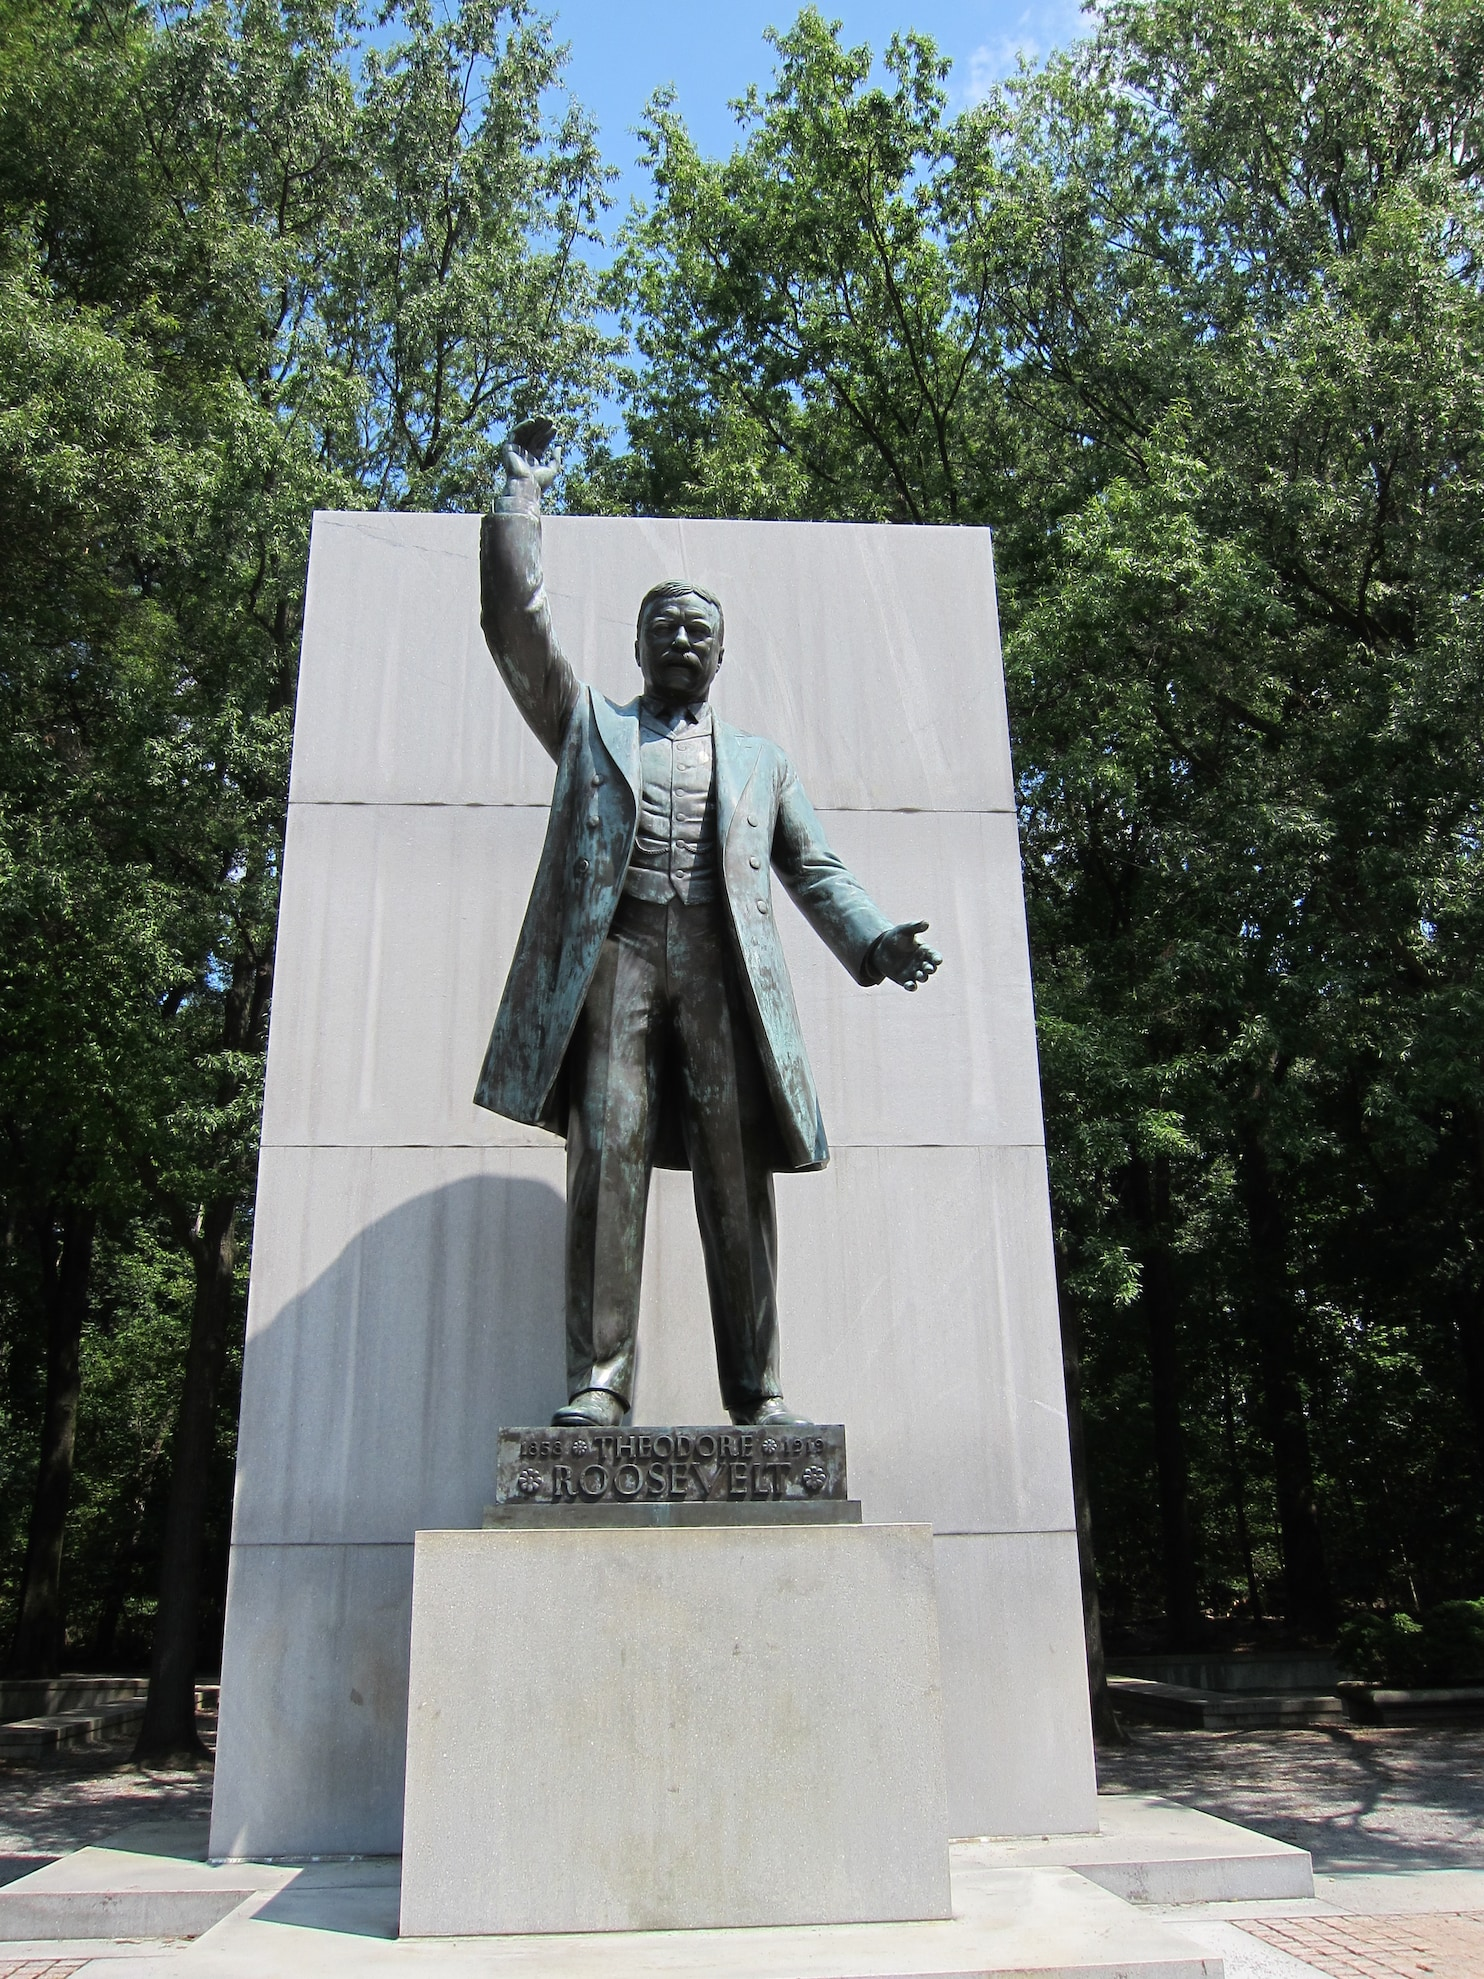 Theodore Roosevelt memorials repairs have hit obstacles